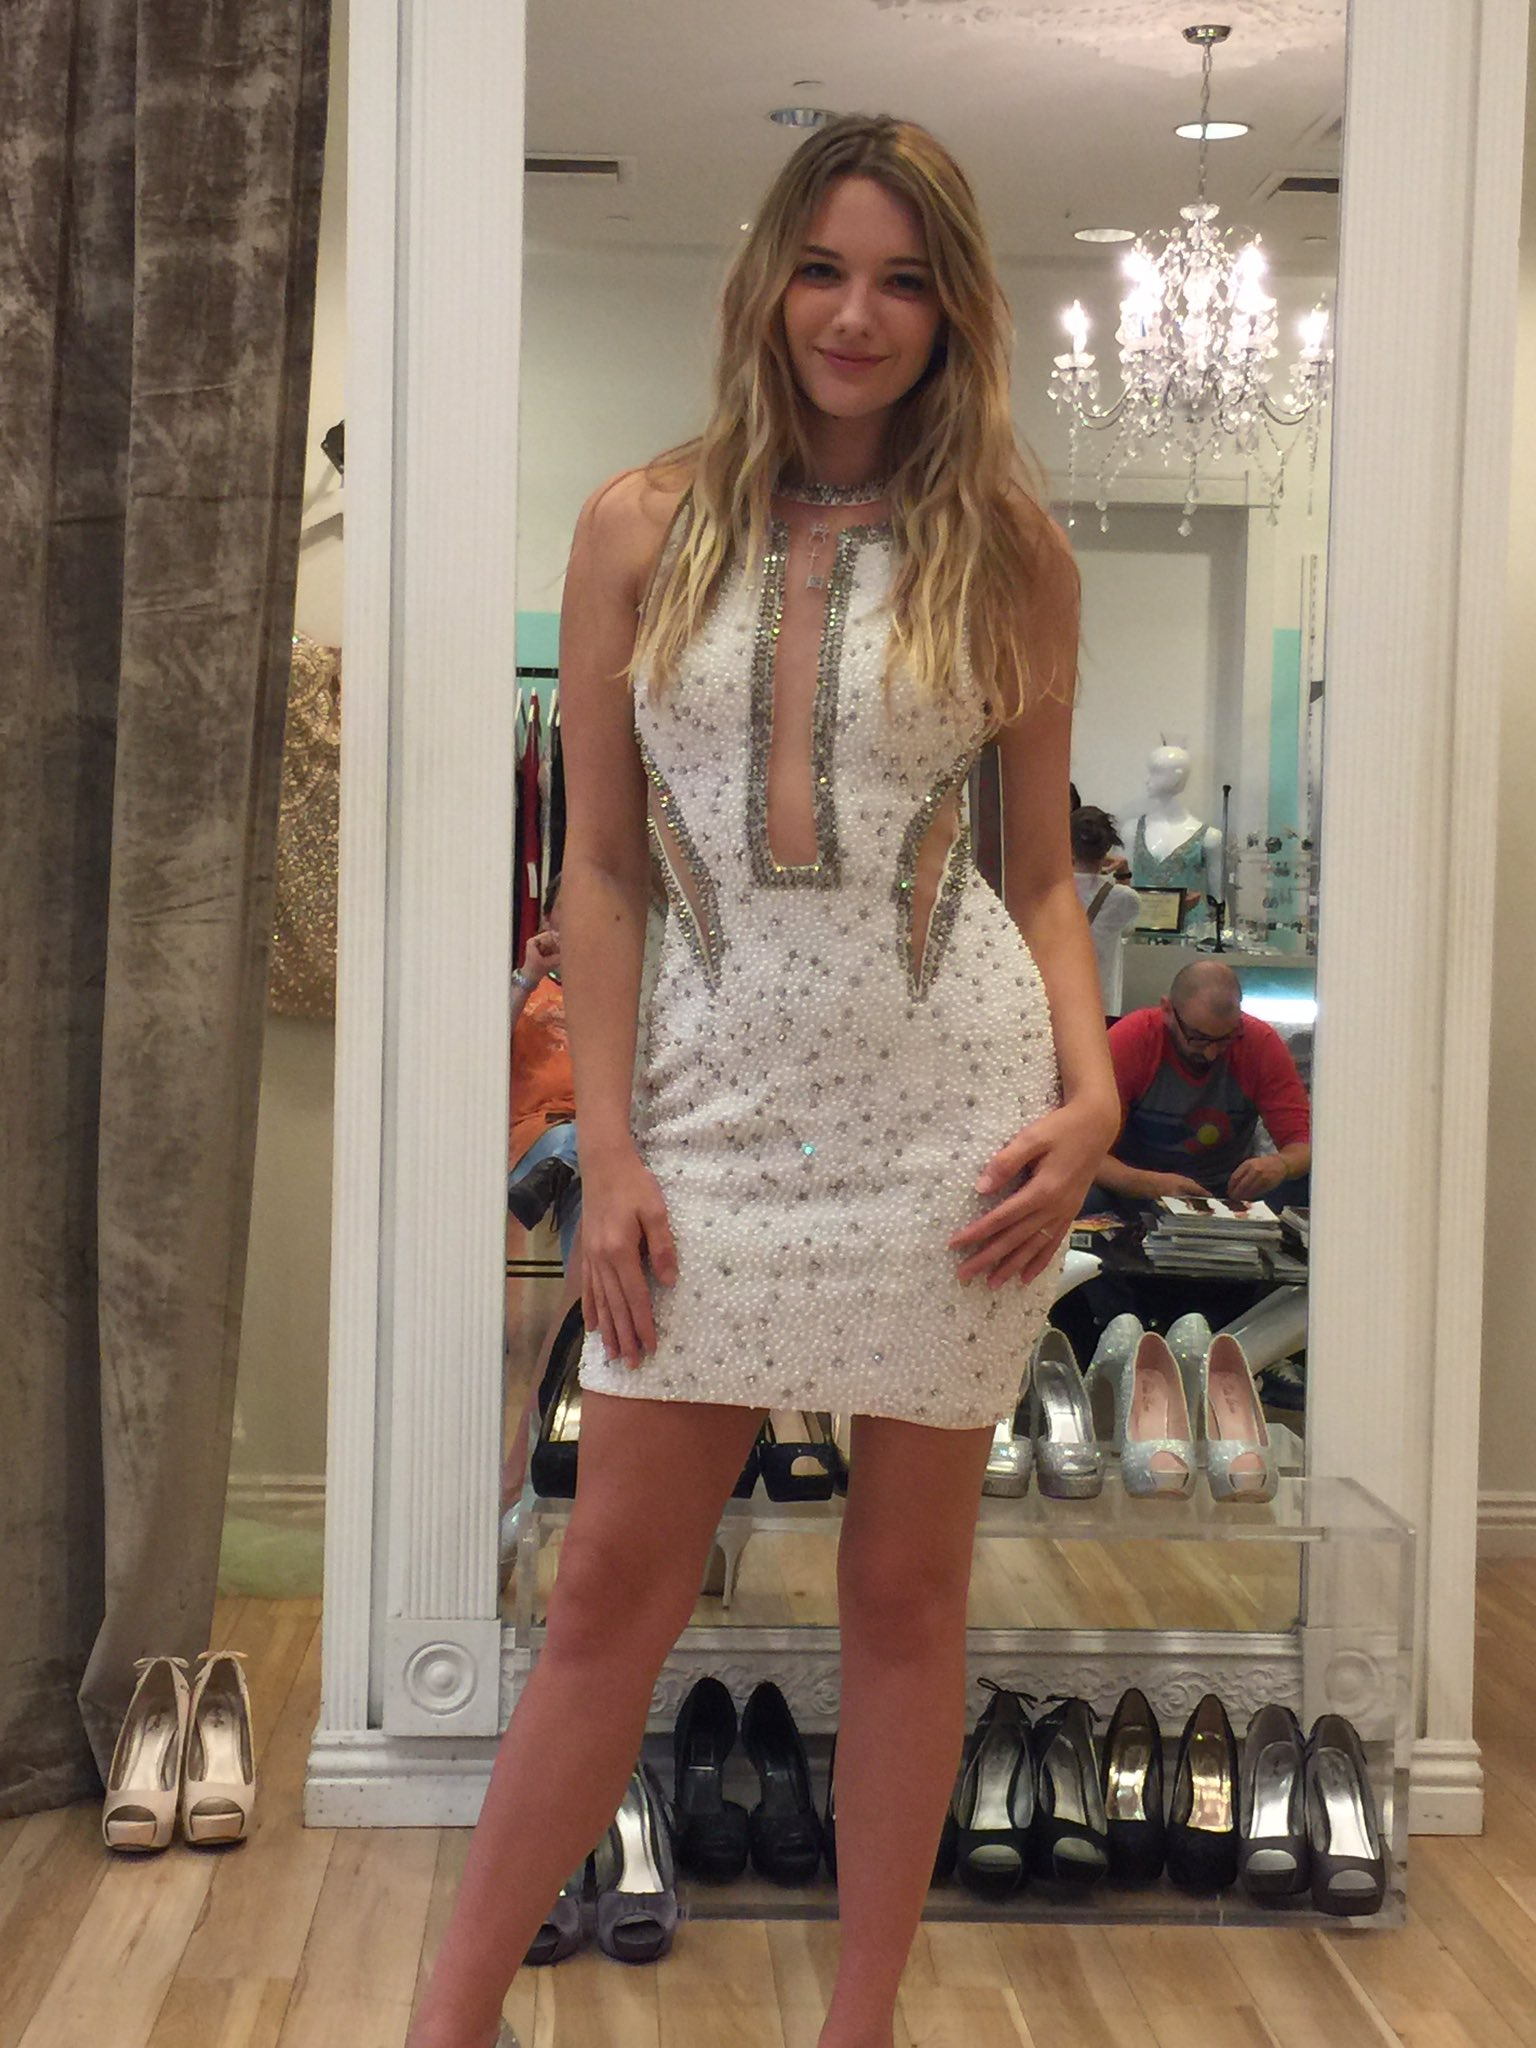 kenna james on twitter   u0026quot dress shopping today  i think i rock this one  what does everyone else